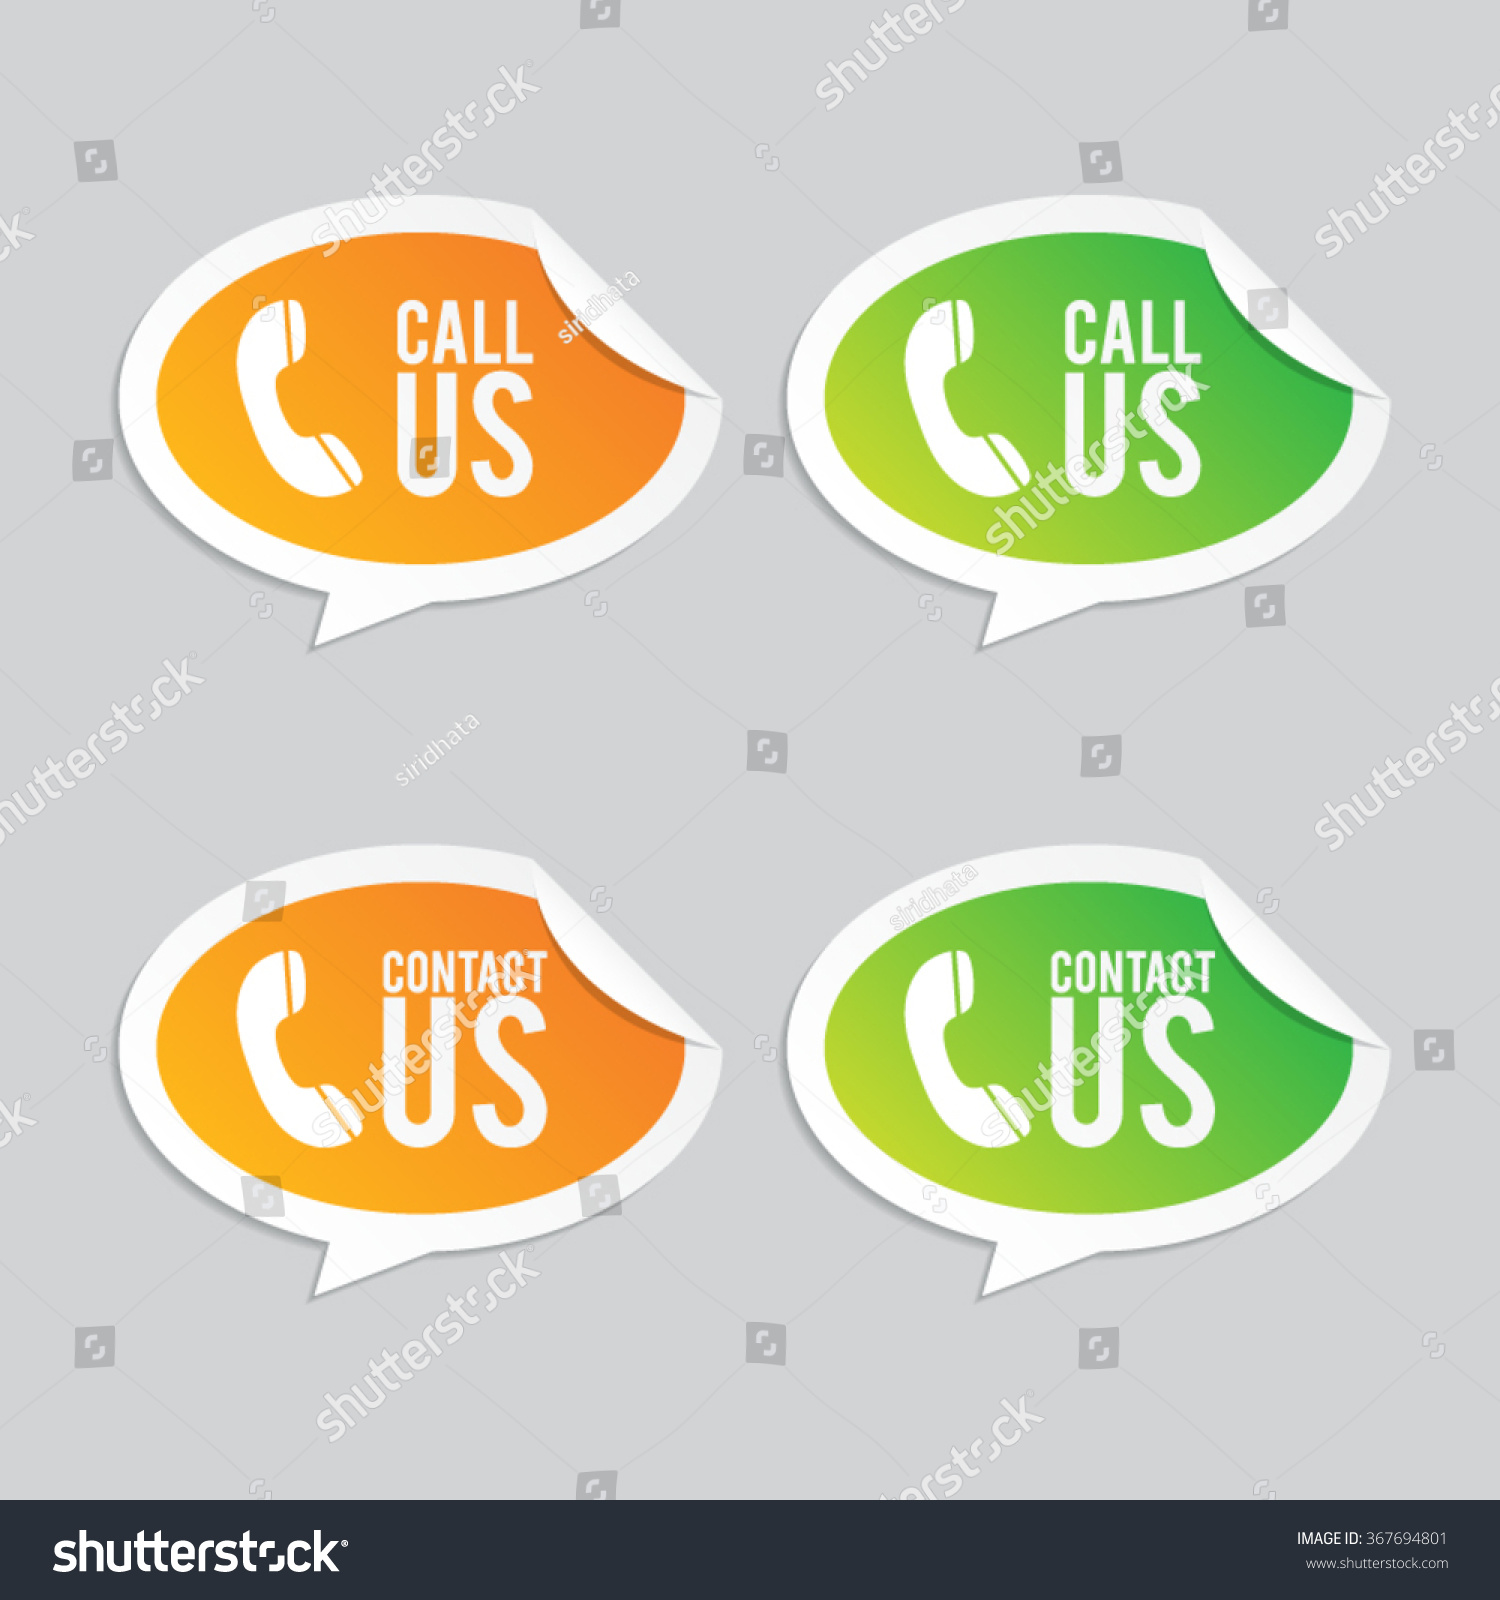 Call us and contact us speech bubble stickers